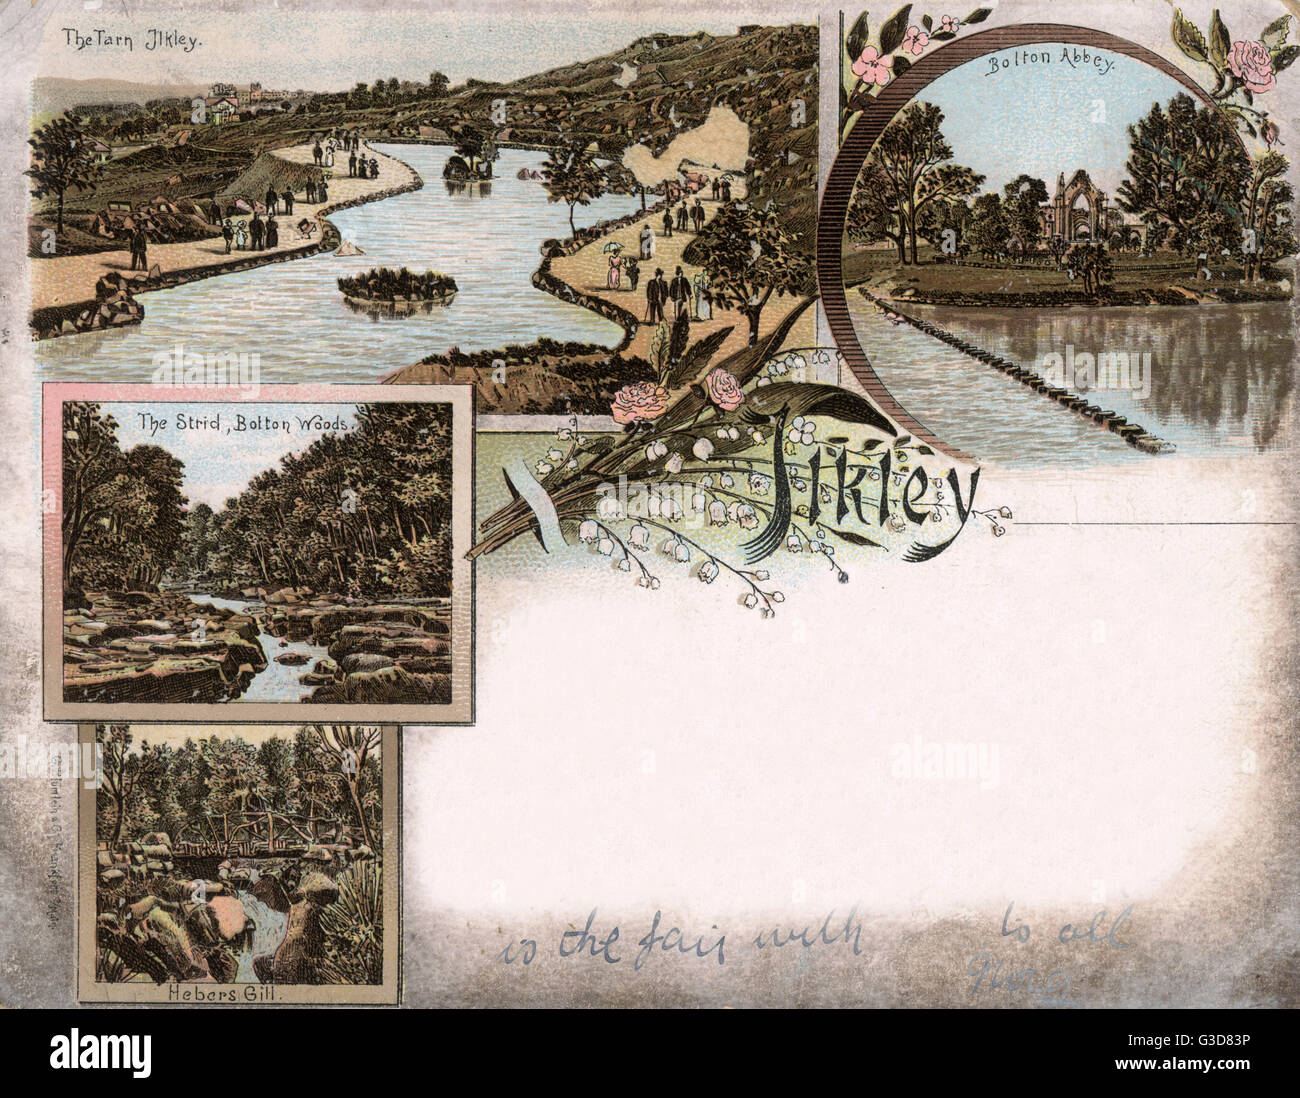 Ilkley - West Yorkshire - Various scenes in the locality including Bolton Abbey, The Ilkley Tarn (small lake), Strid Stock Photo